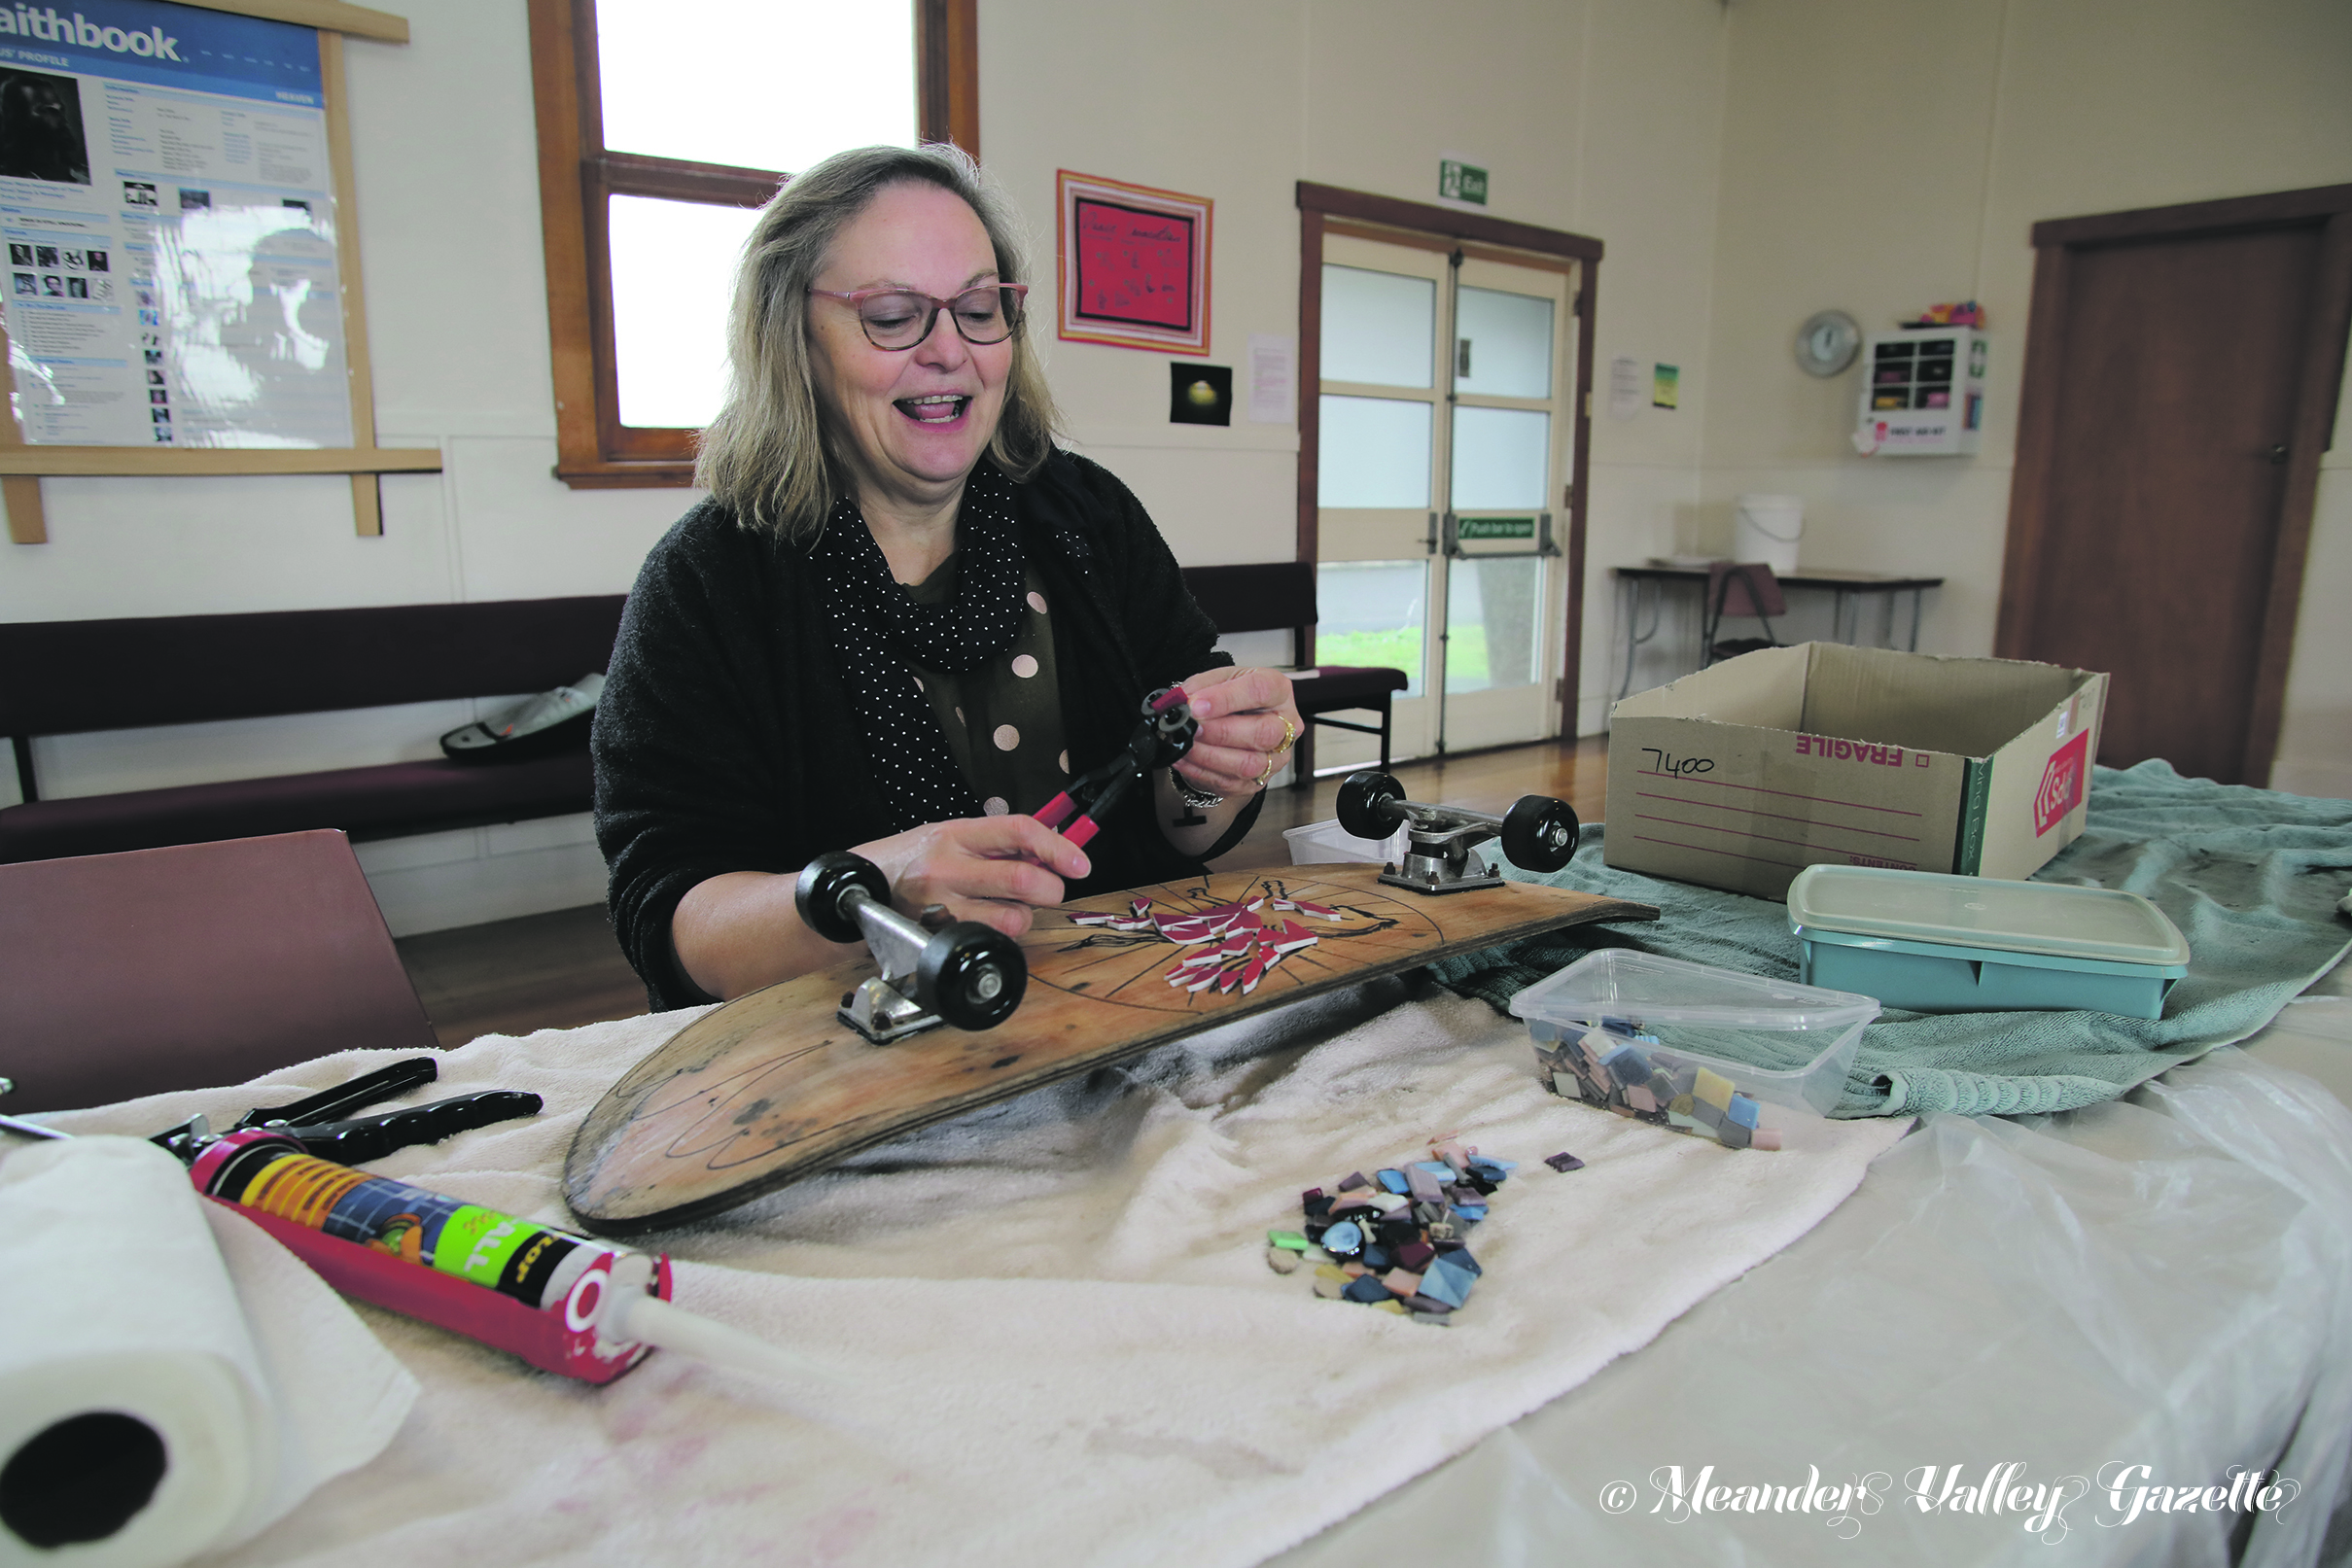 MVU3A member Susanne Puccetti works some of her mosaic magic on an old skateboard.  Photo by Mike Moores